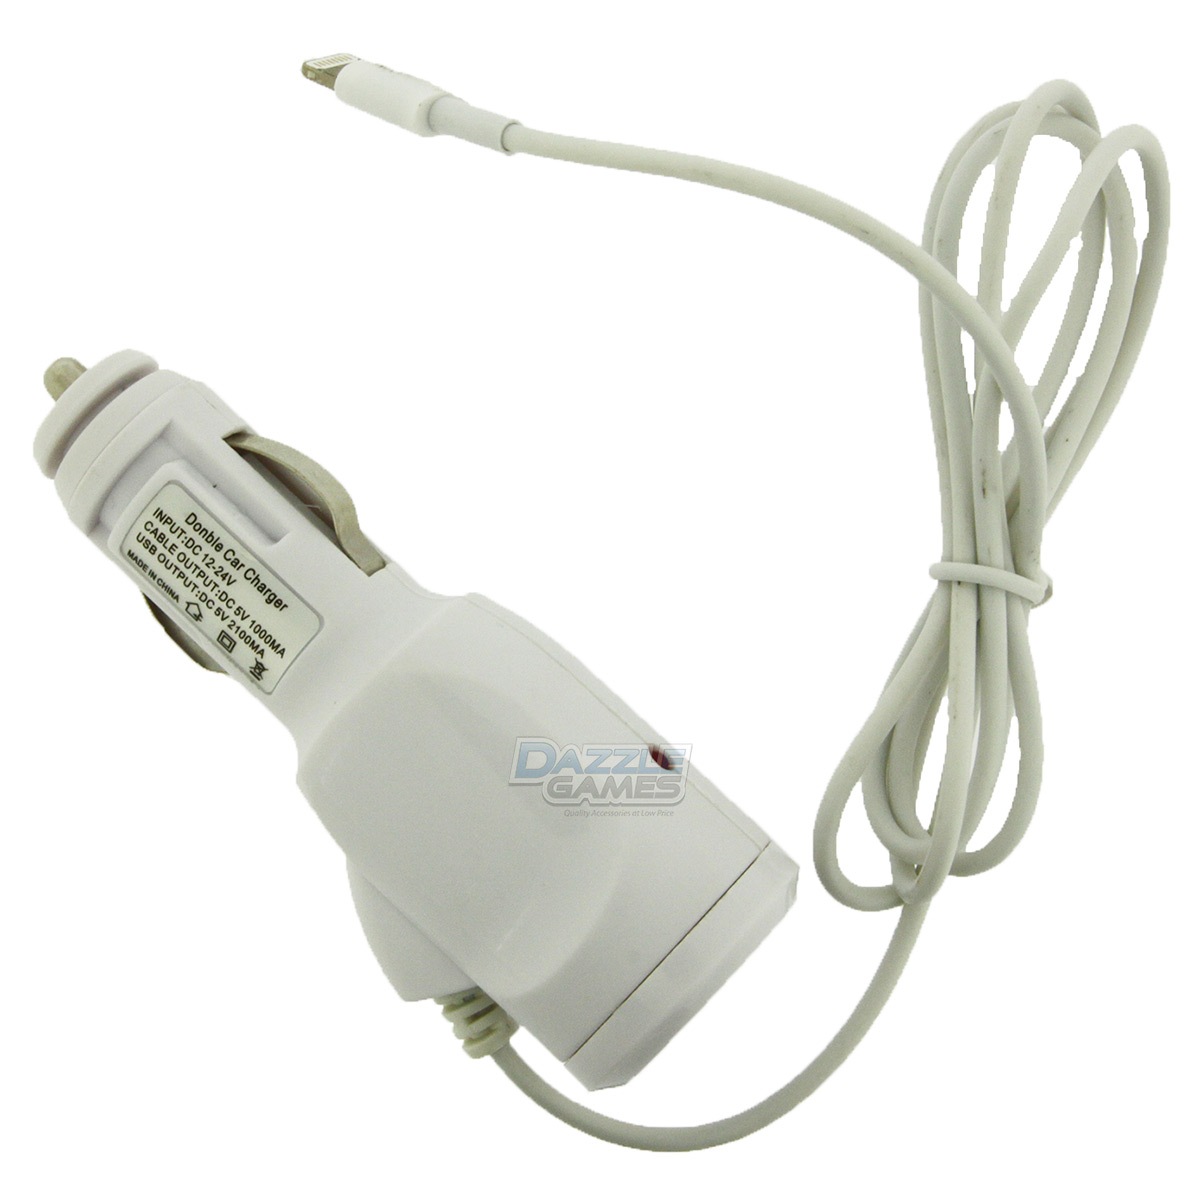 8 Pin Rapid Fast Travel Battery Car Charger Adapter For